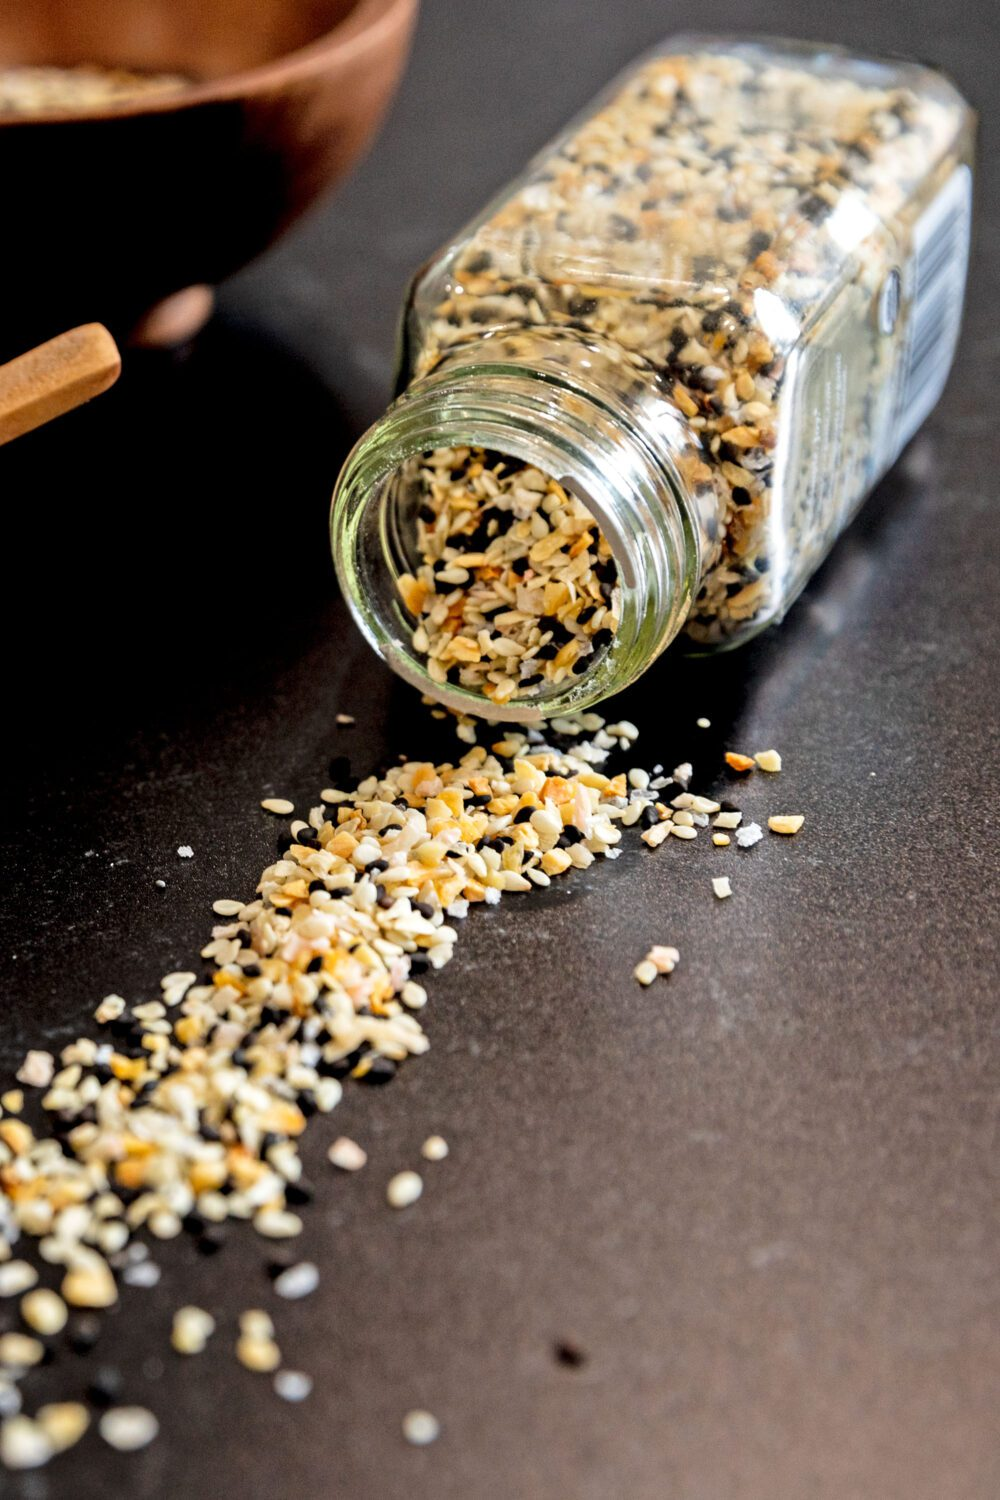 spice jar tipped over with spices coming out